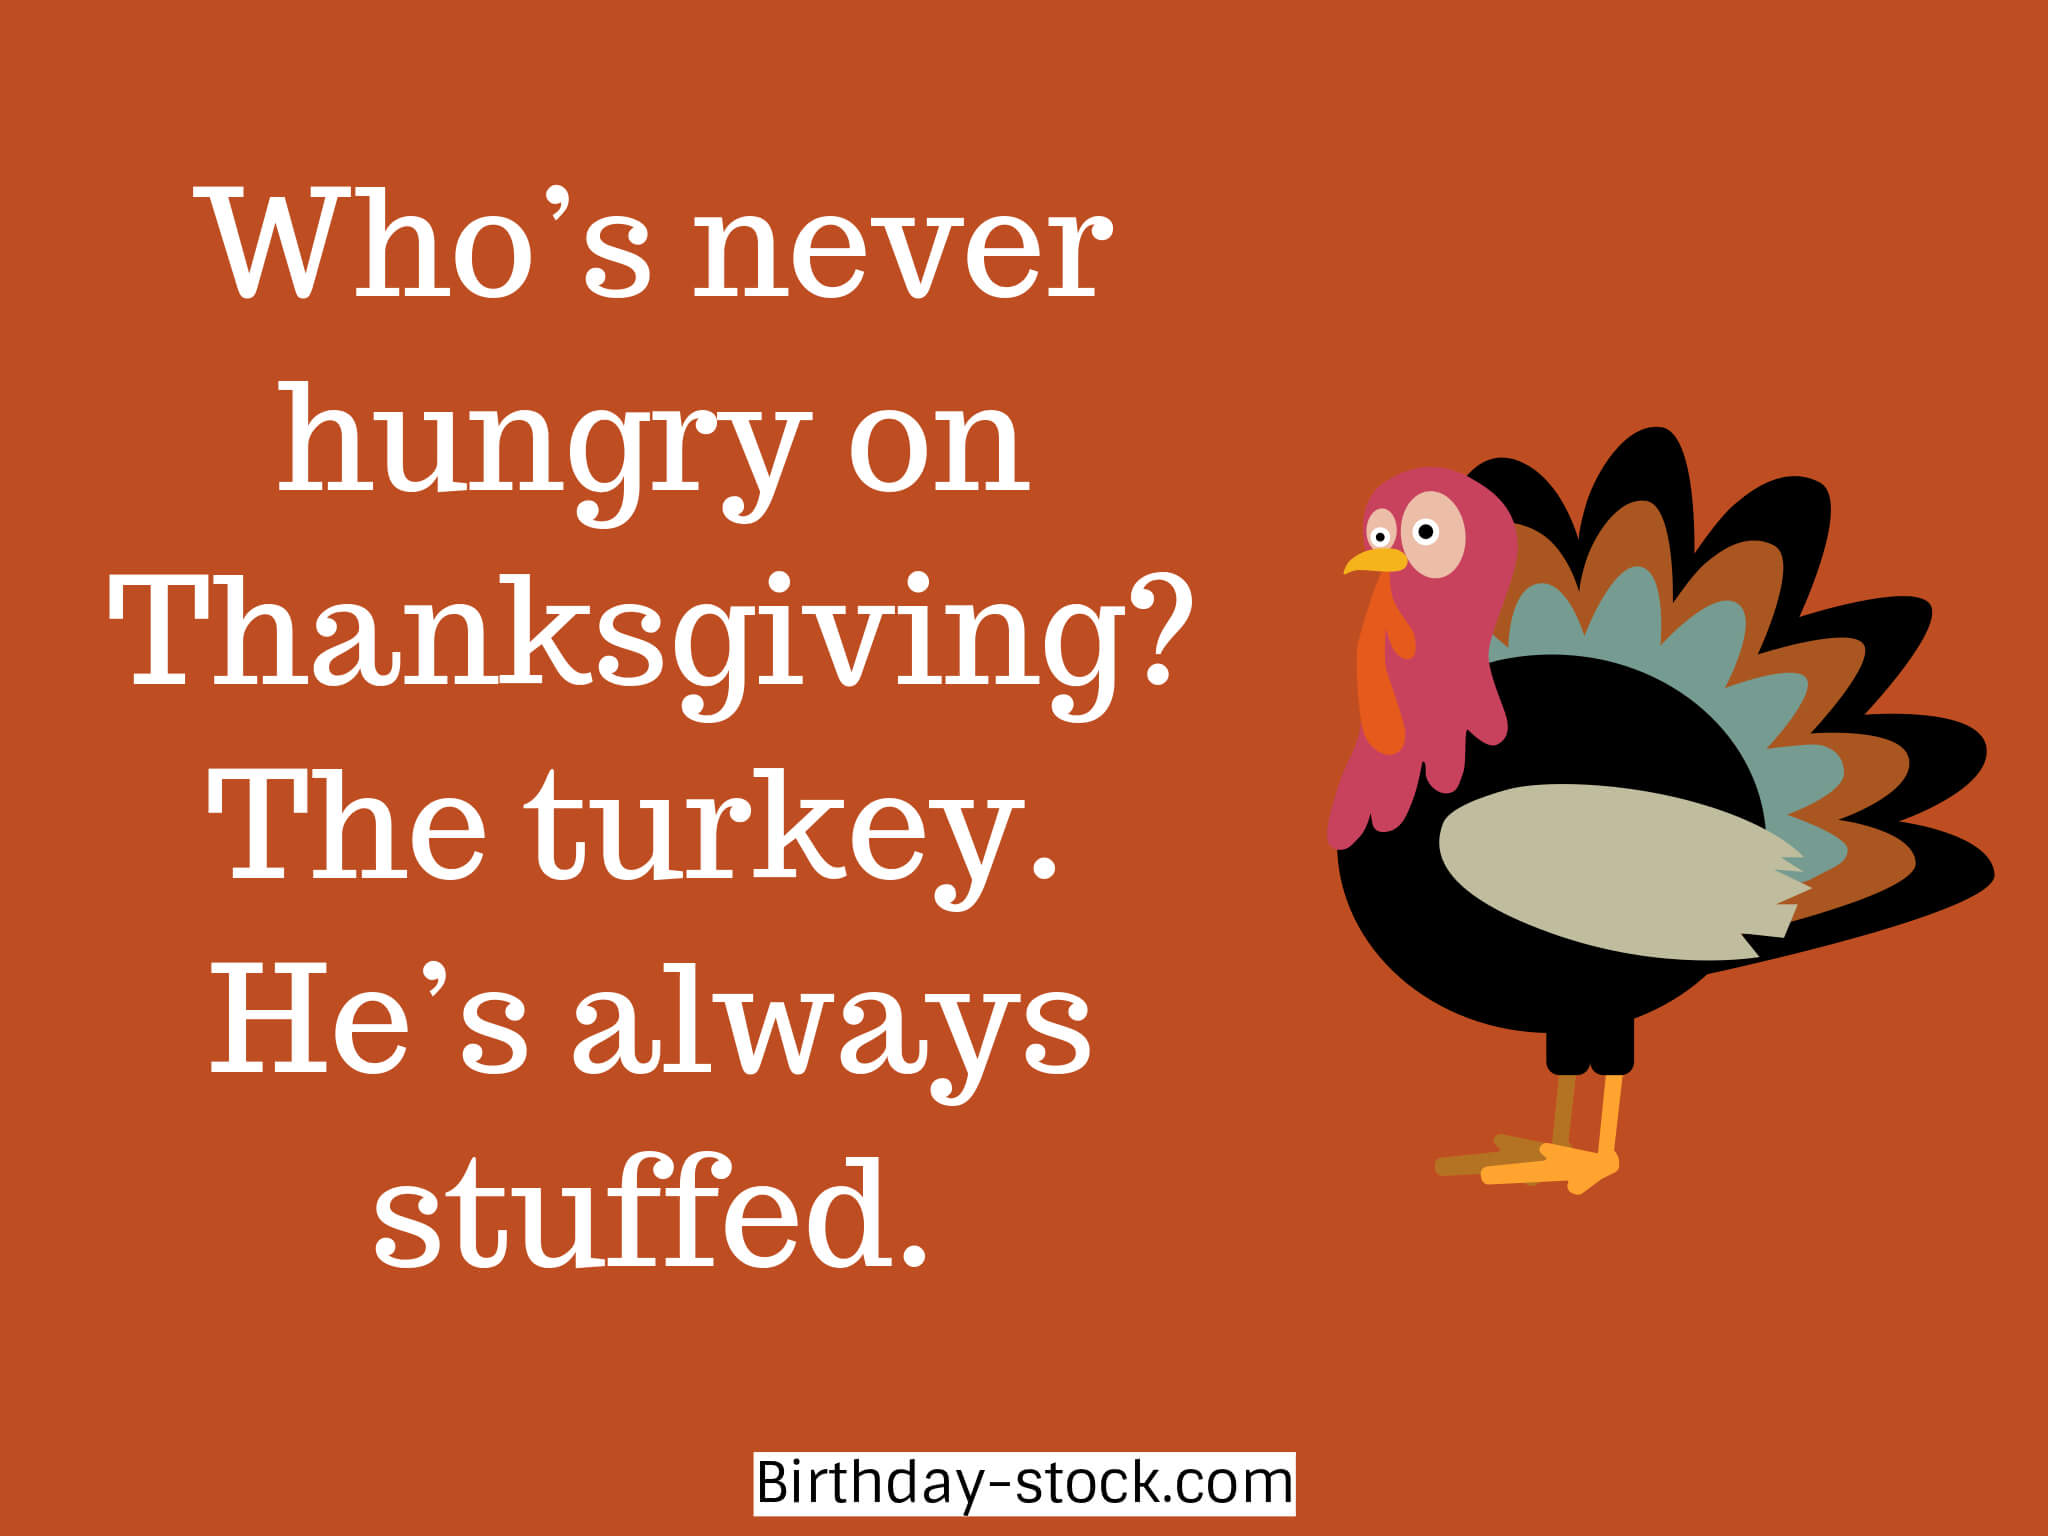 Funny Turkey Pictures Thanksgiving 2019 | Cartoon Images 2019